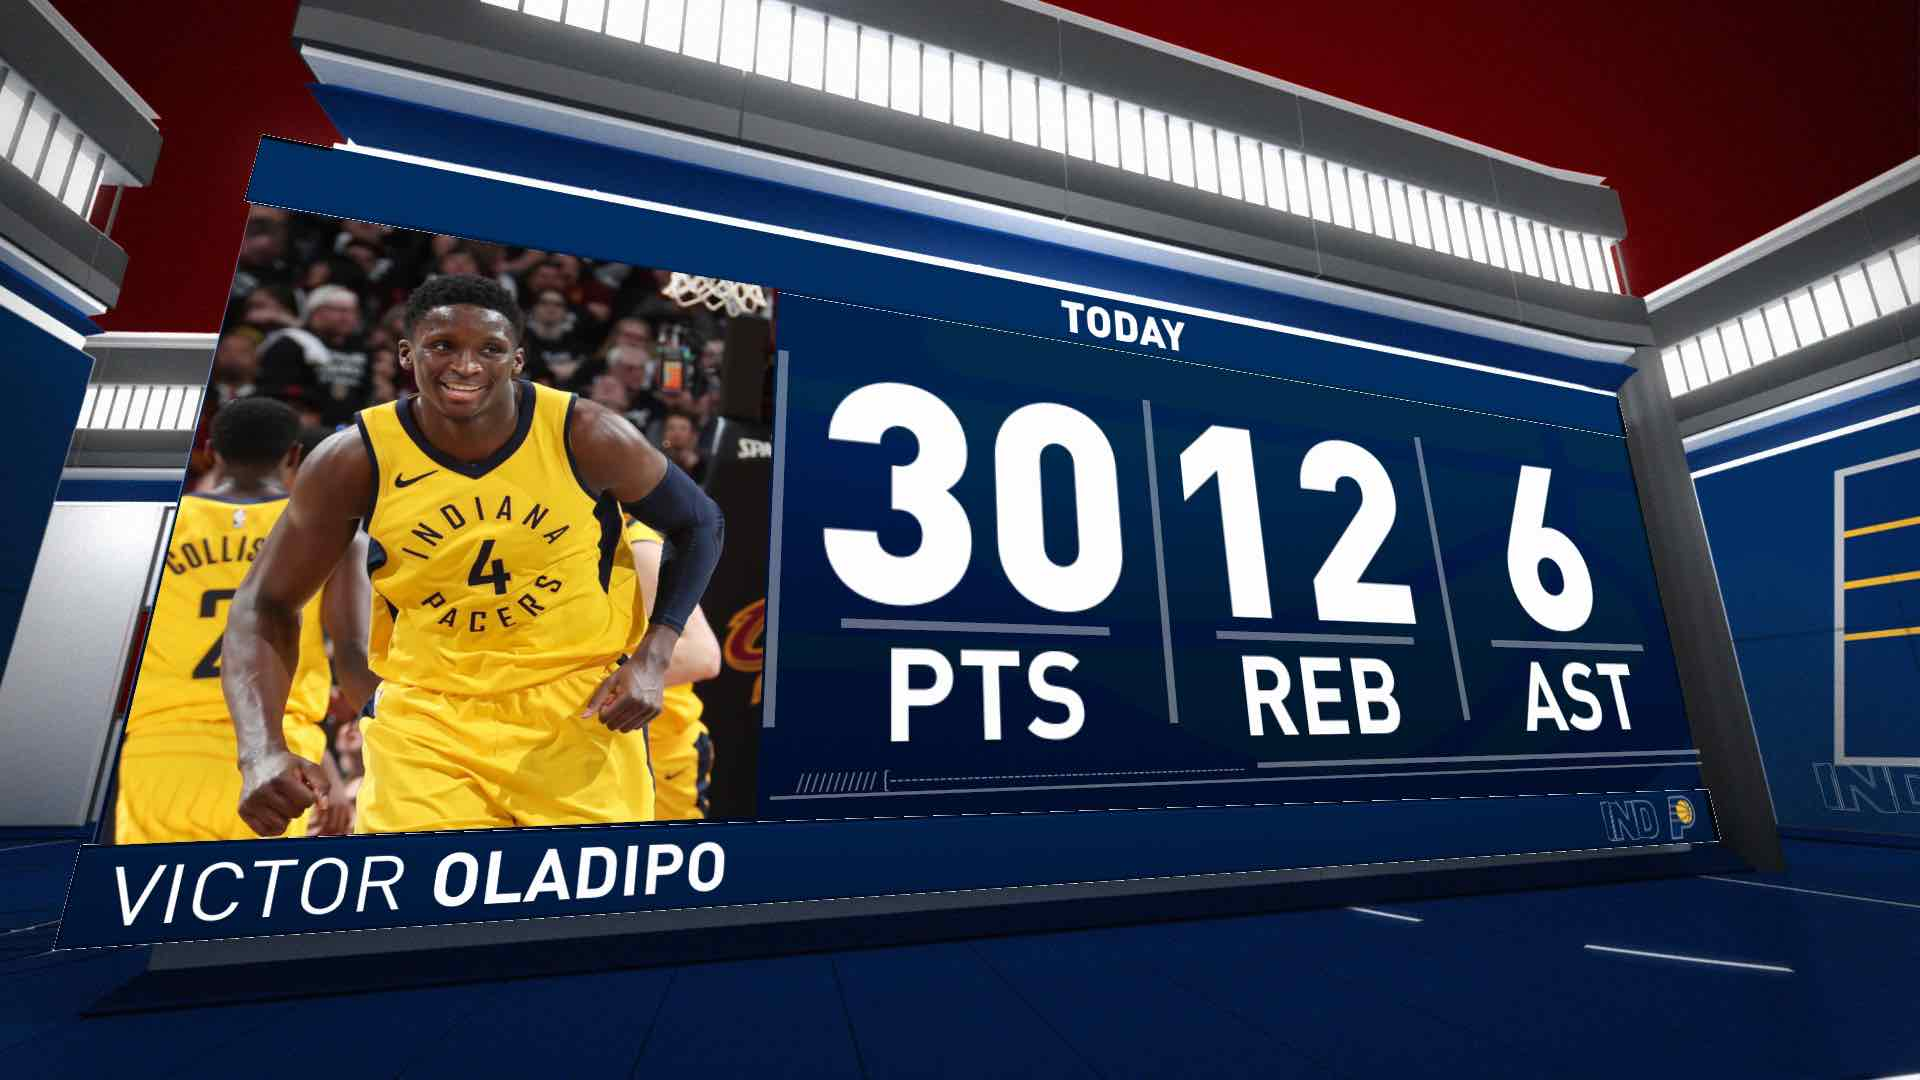 Victor Oladipo (30 points) Highlights vs. Cleveland Cavaliers